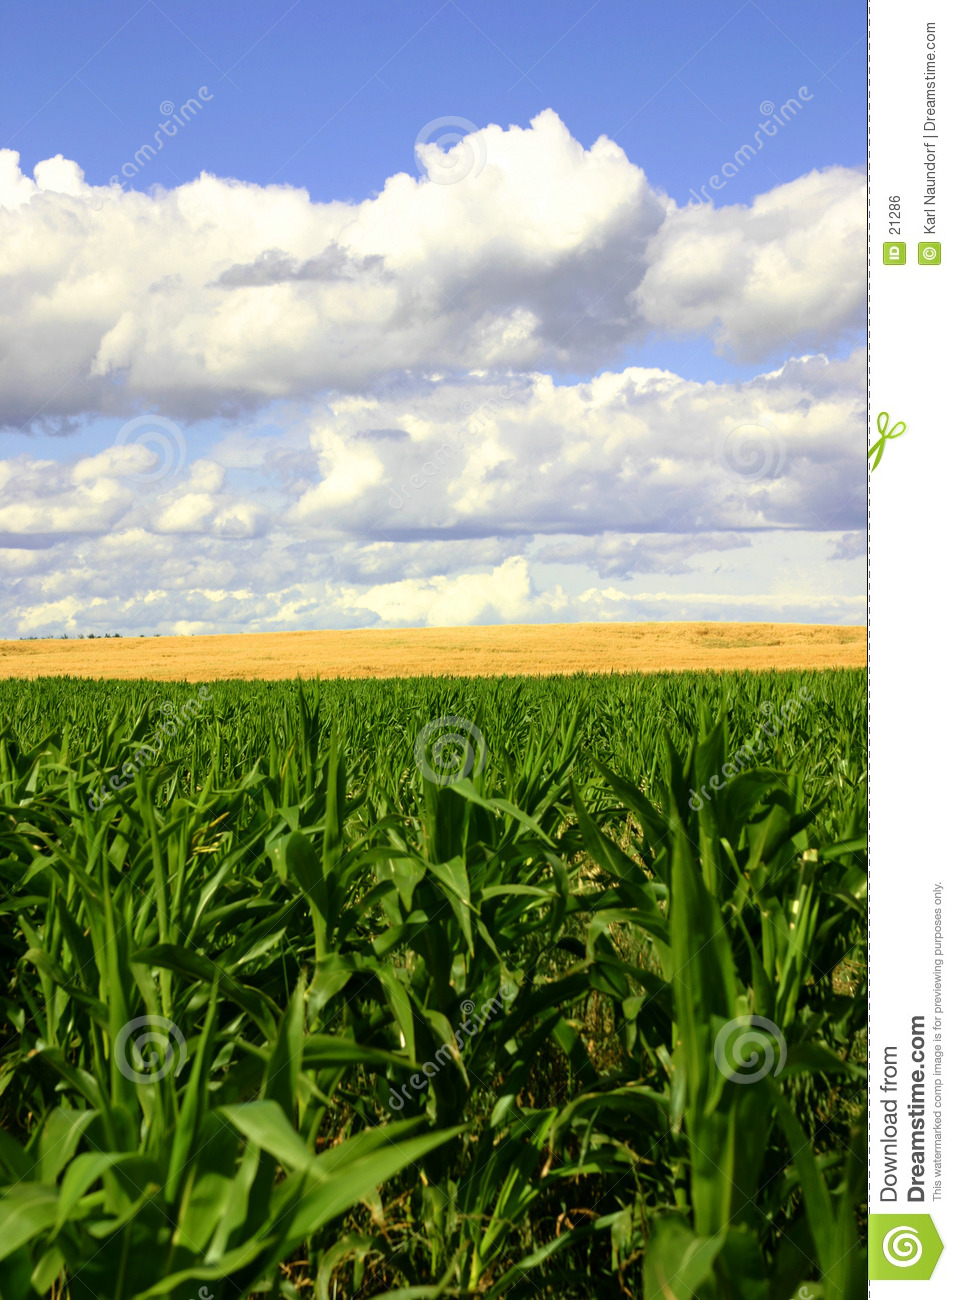 Green and Gold Fields, Blue Skies II